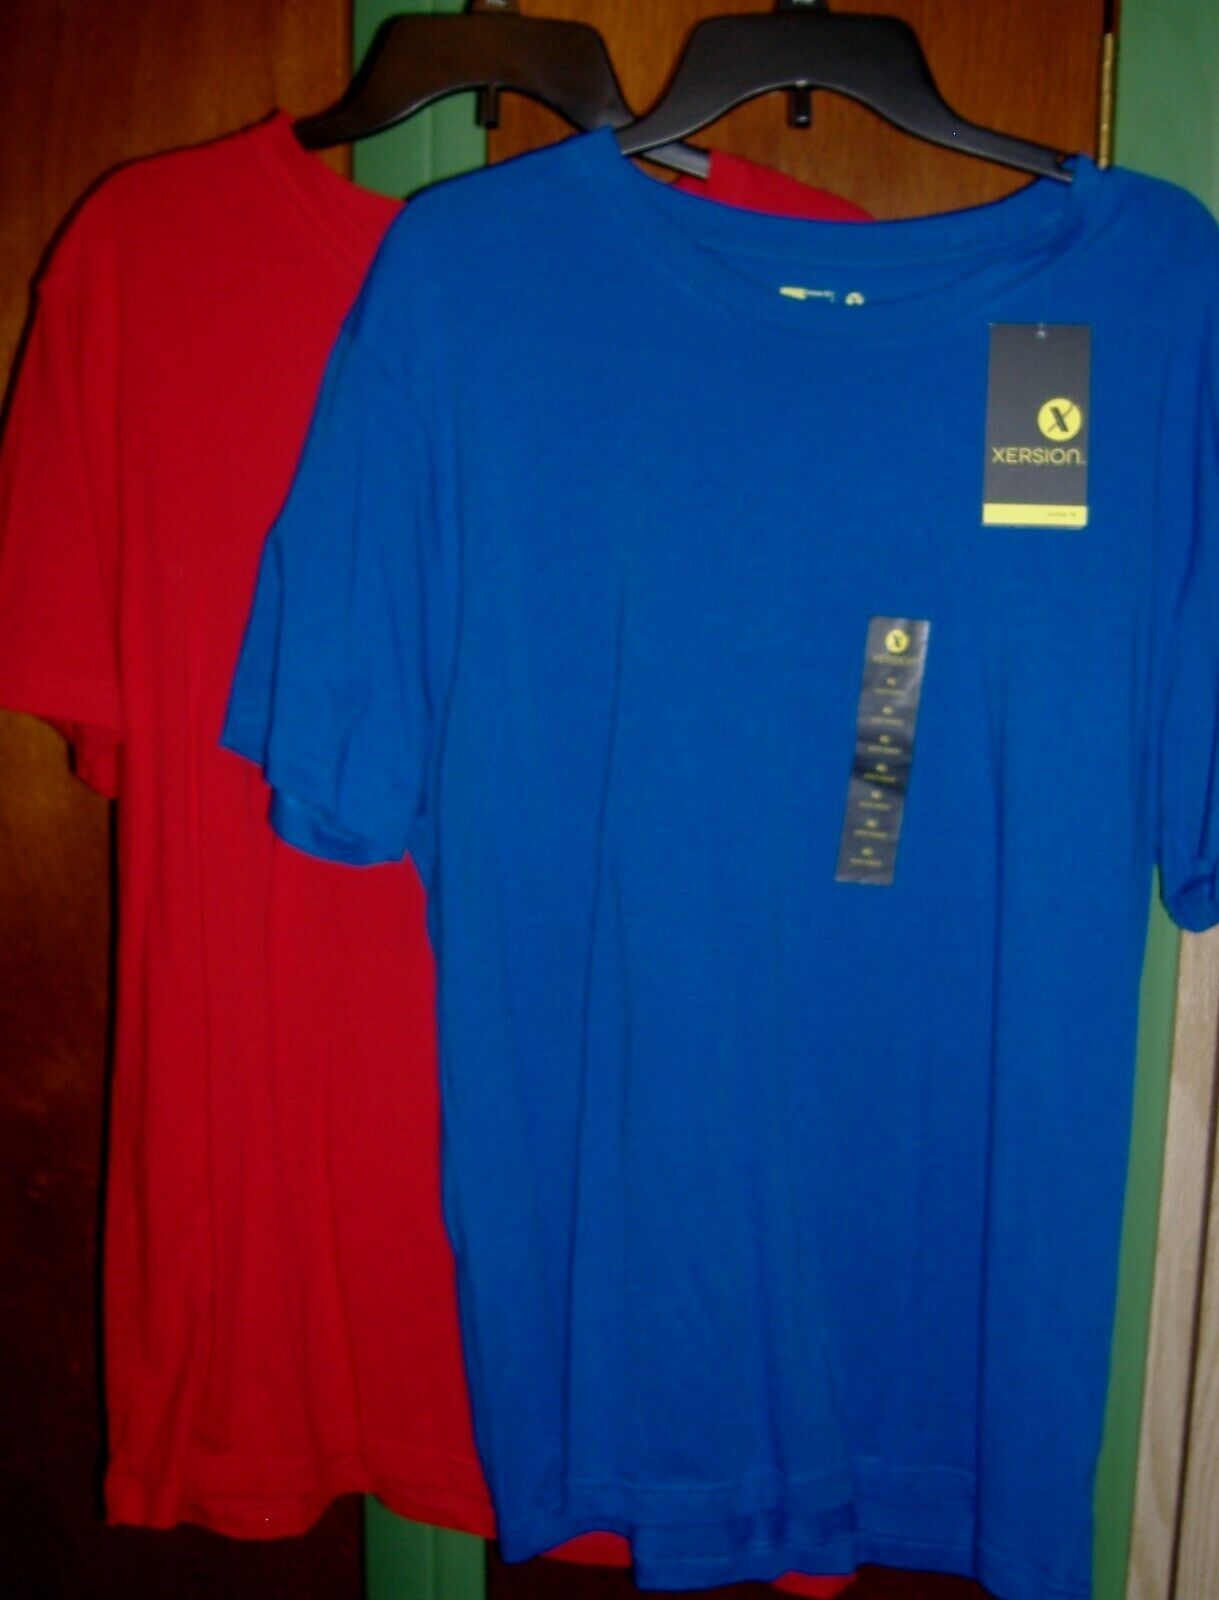 TWO Xersion XL Wicking Performance Sport Shirts - NEW  - $19.99